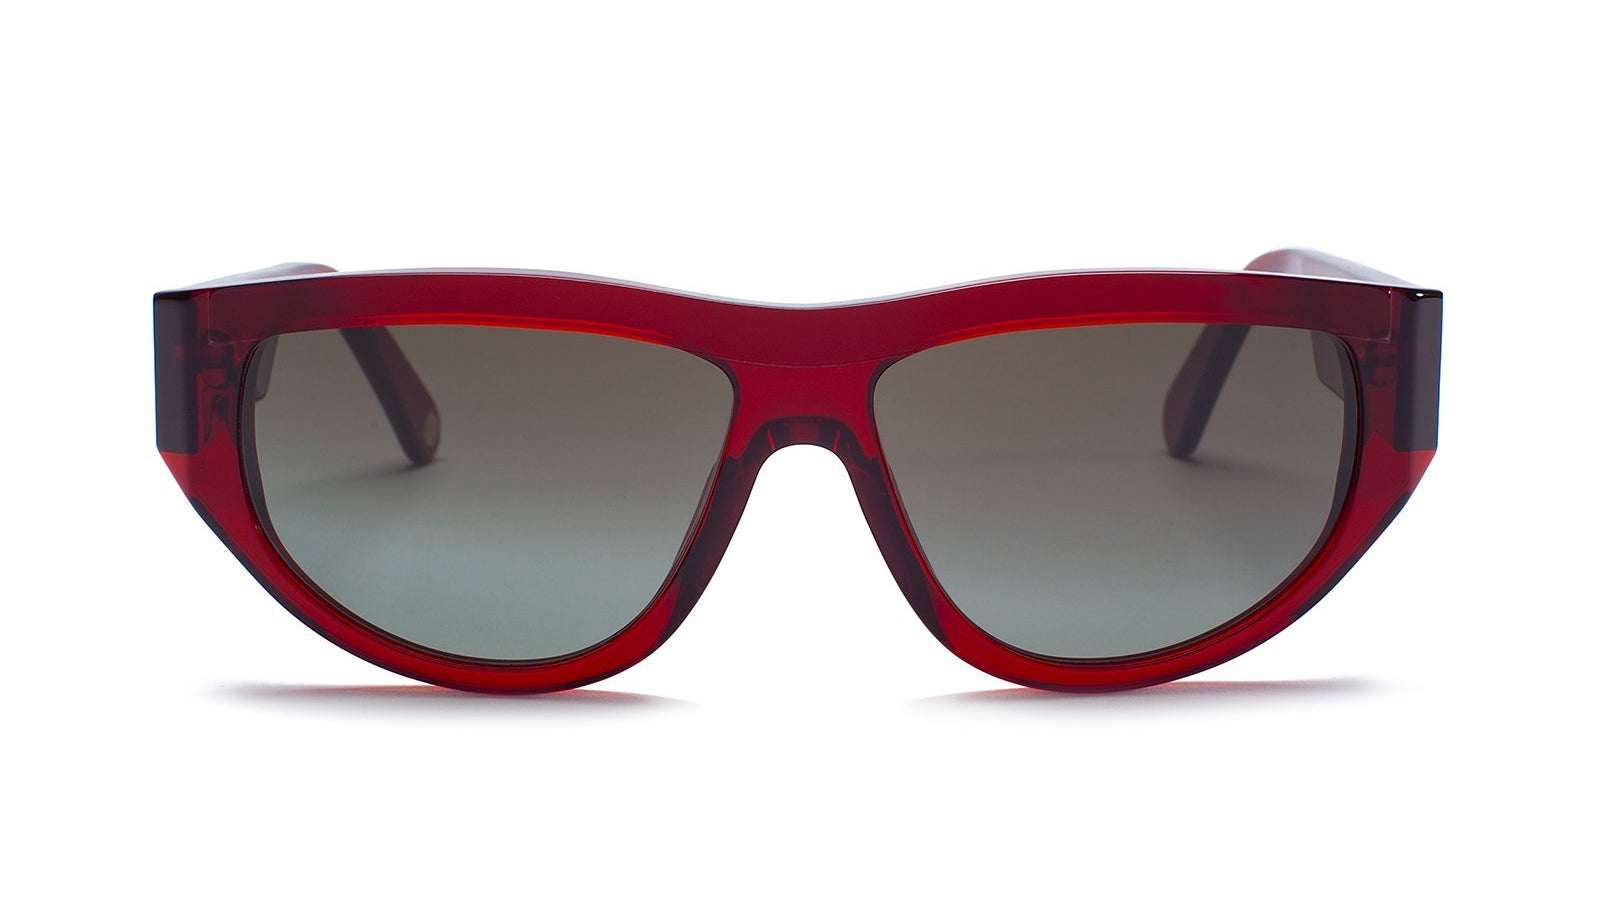 Ahlem Eyewear Bel Air Sunglasses